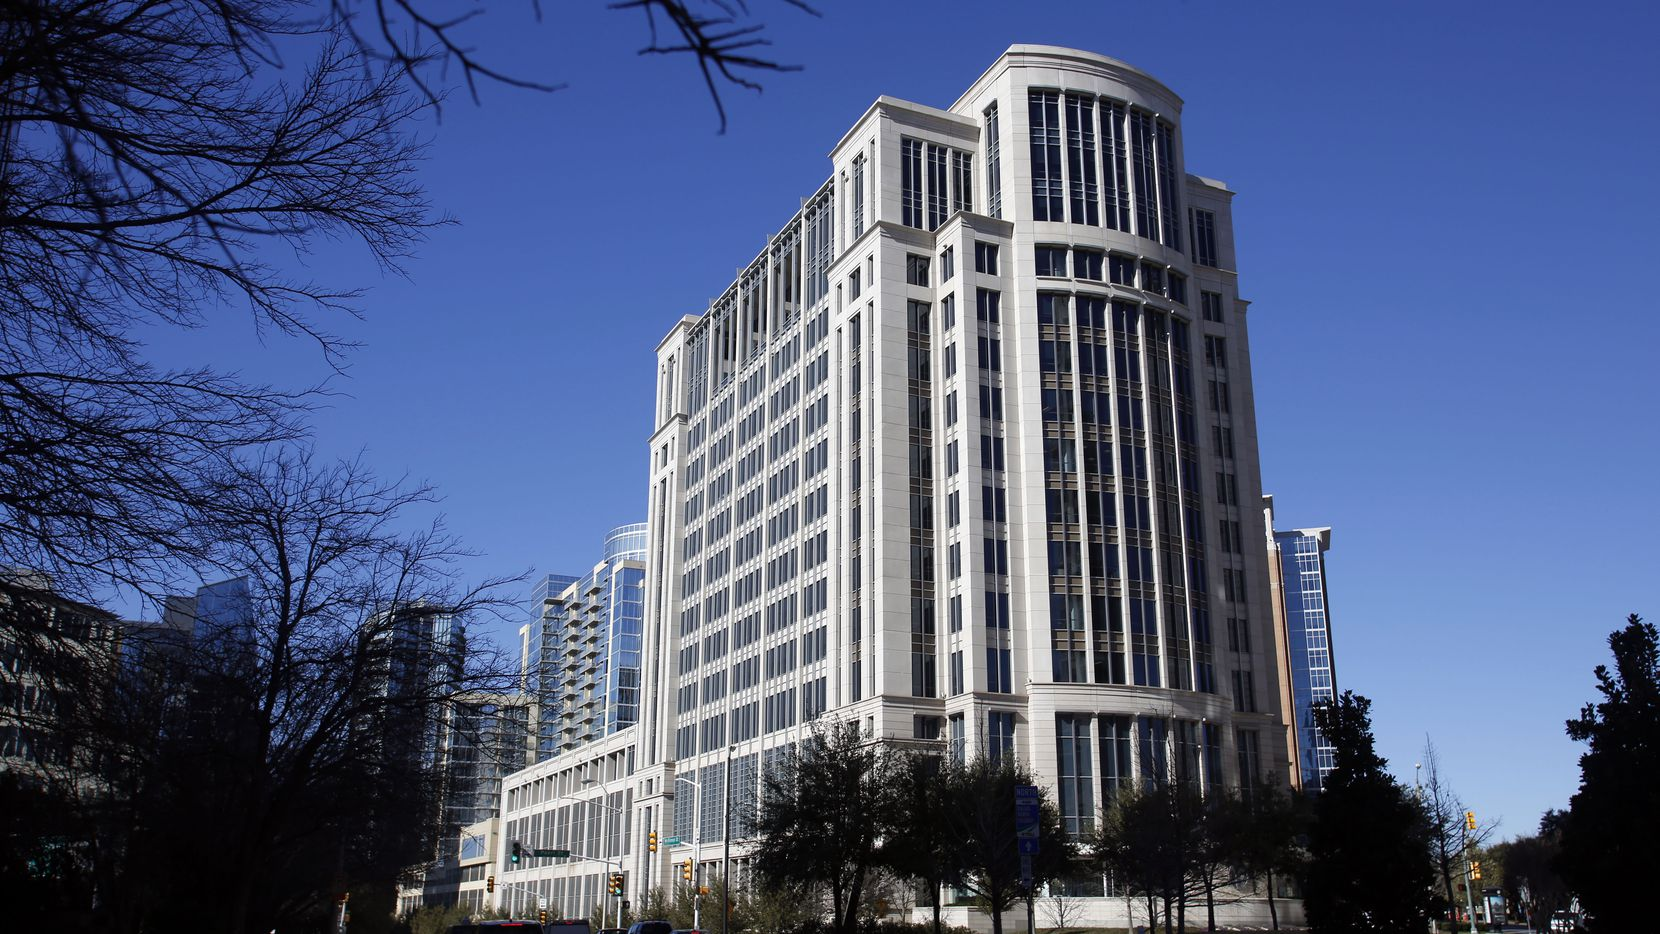 CityCentral will operate a co-working center on the 10th floor of the Rosewood Court tower.